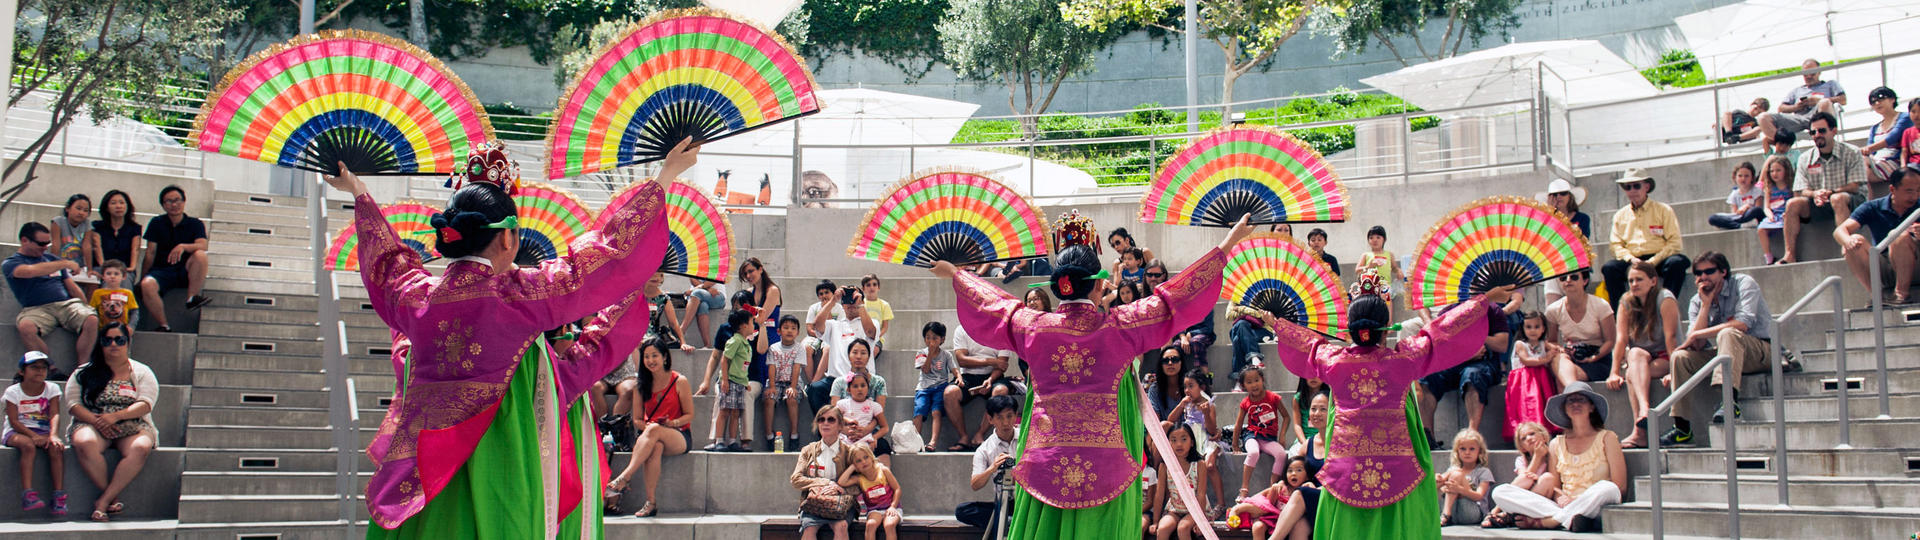 Dancers performing in amphitheater